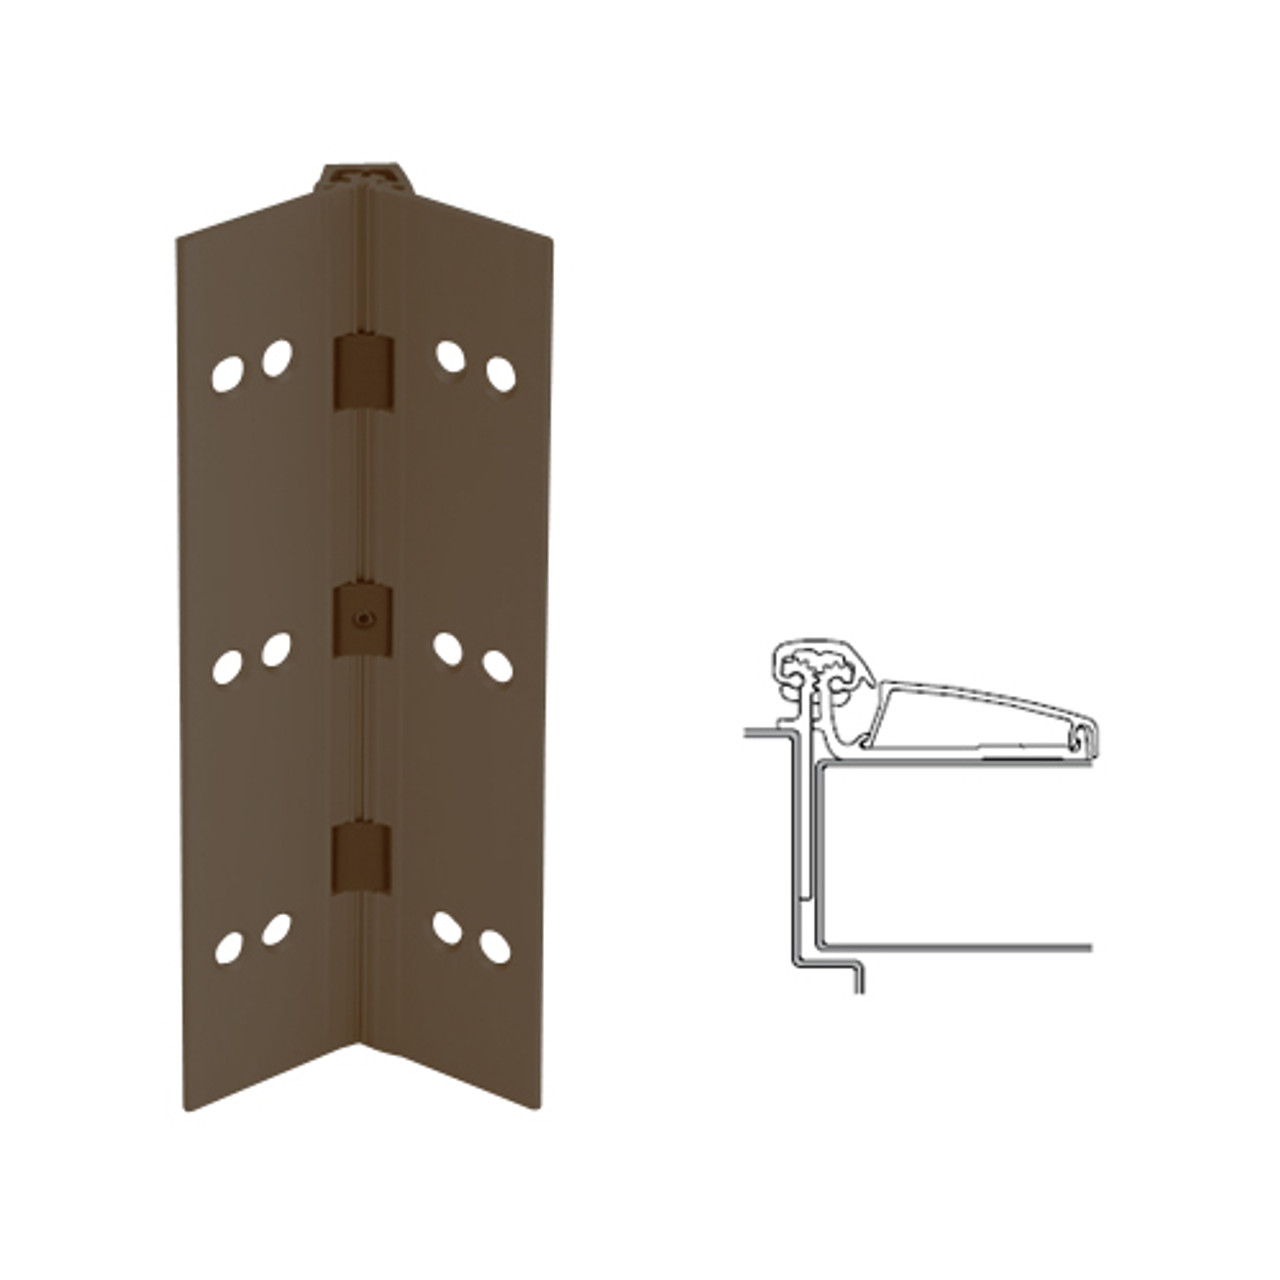 045XY-313AN-83-TF IVES Adjustable Half Surface Continuous Geared Hinges with Thread Forming Screws in Dark Bronze Anodized